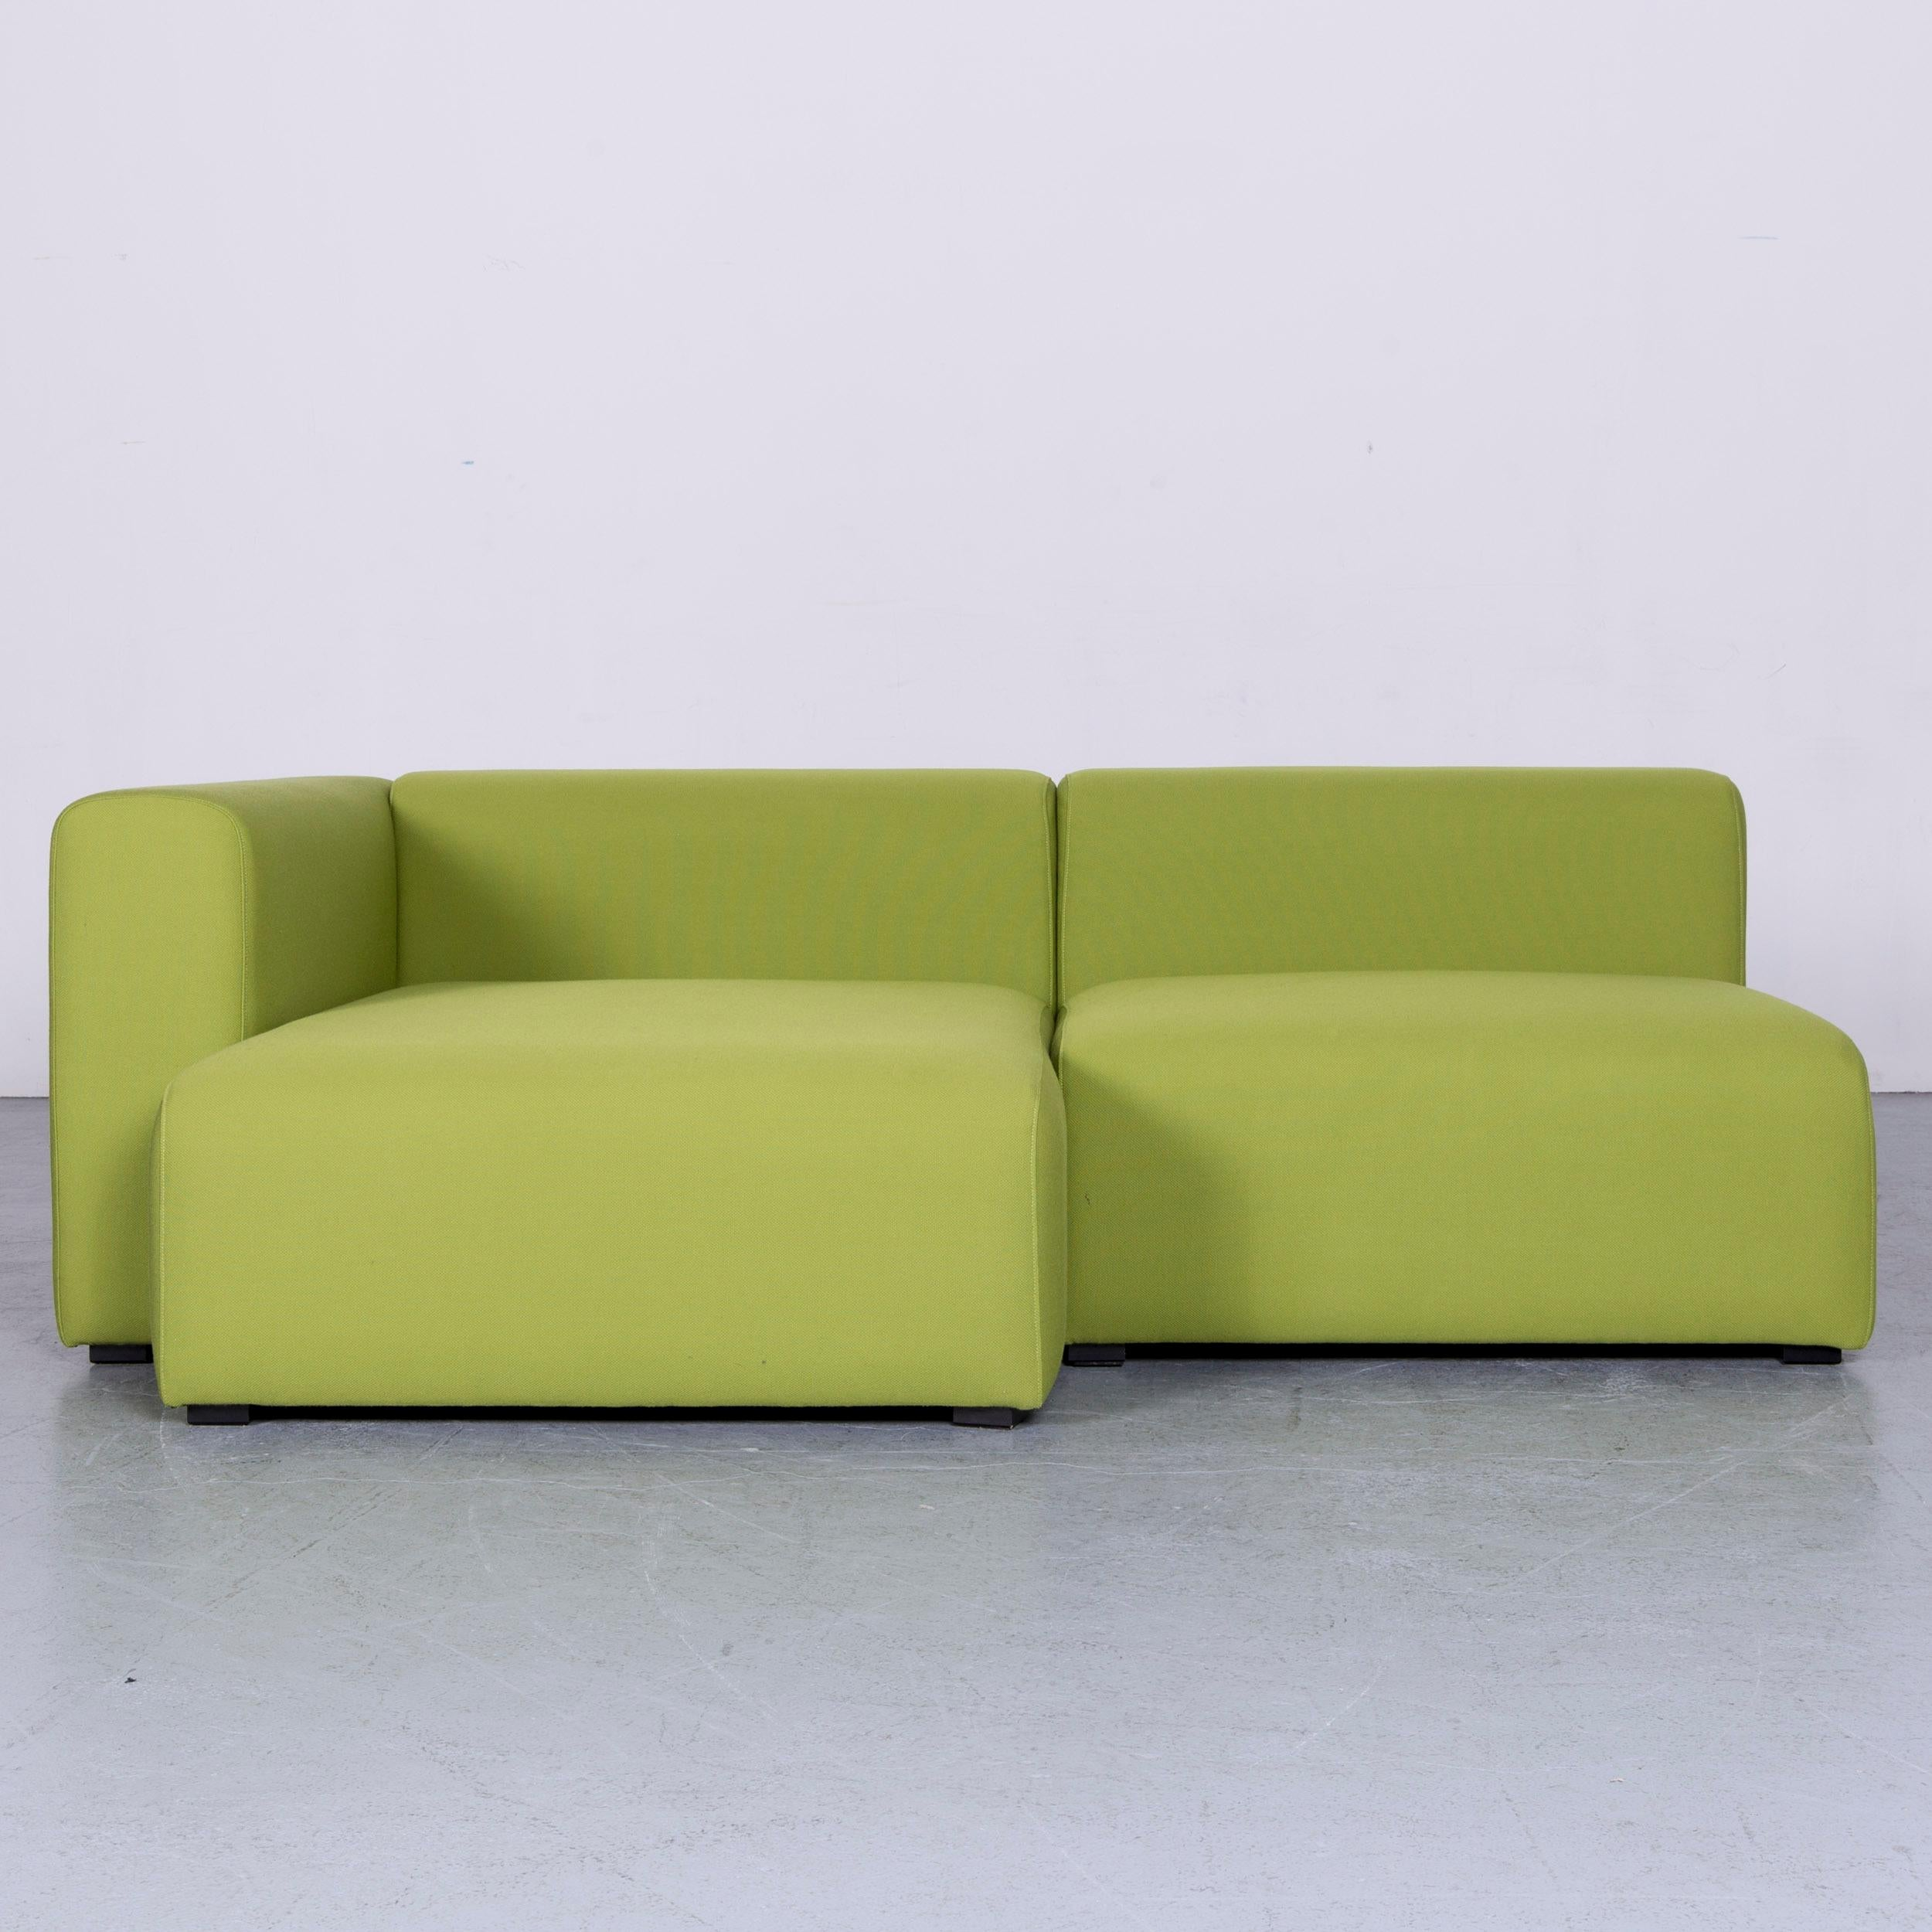 We Bring To You An Hay Mags Designer Fabric Sofa Green Corner Couch.